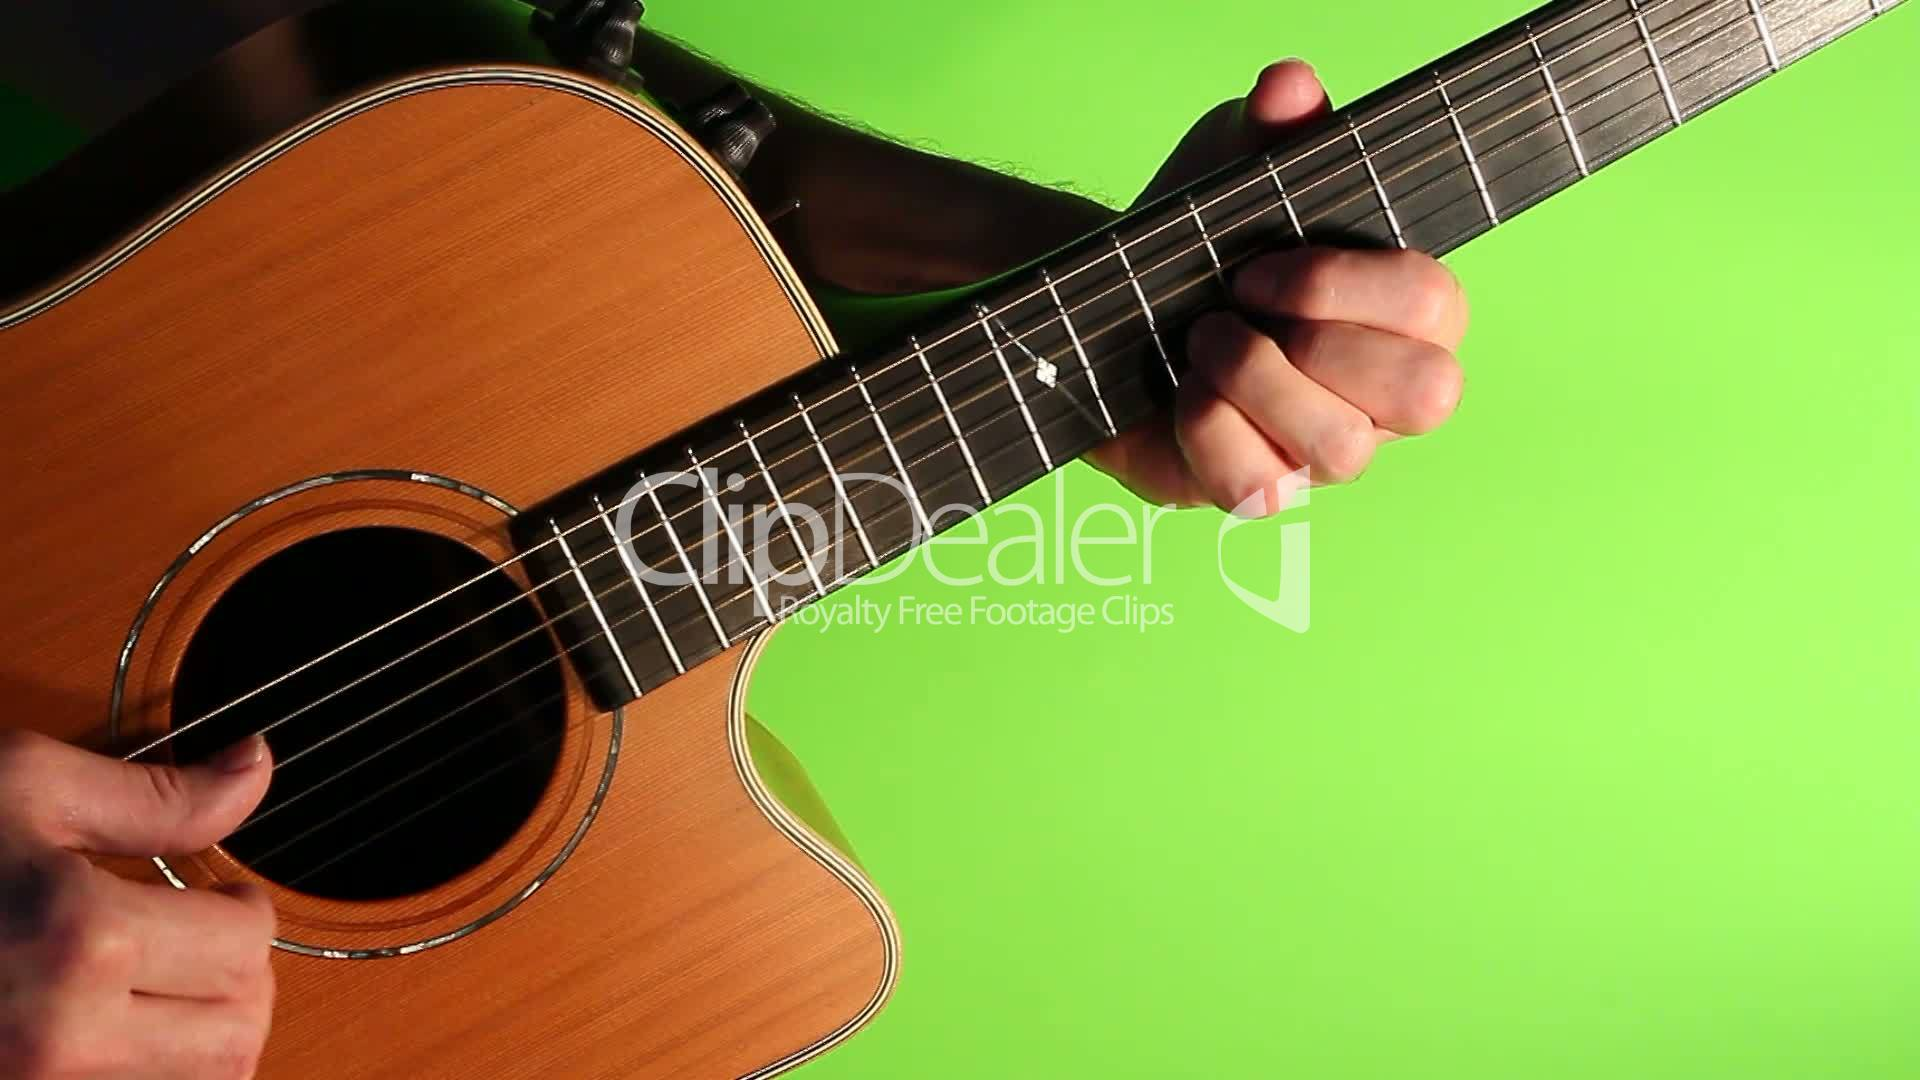 Acoustic guitar green screen: Royalty-free video and stock